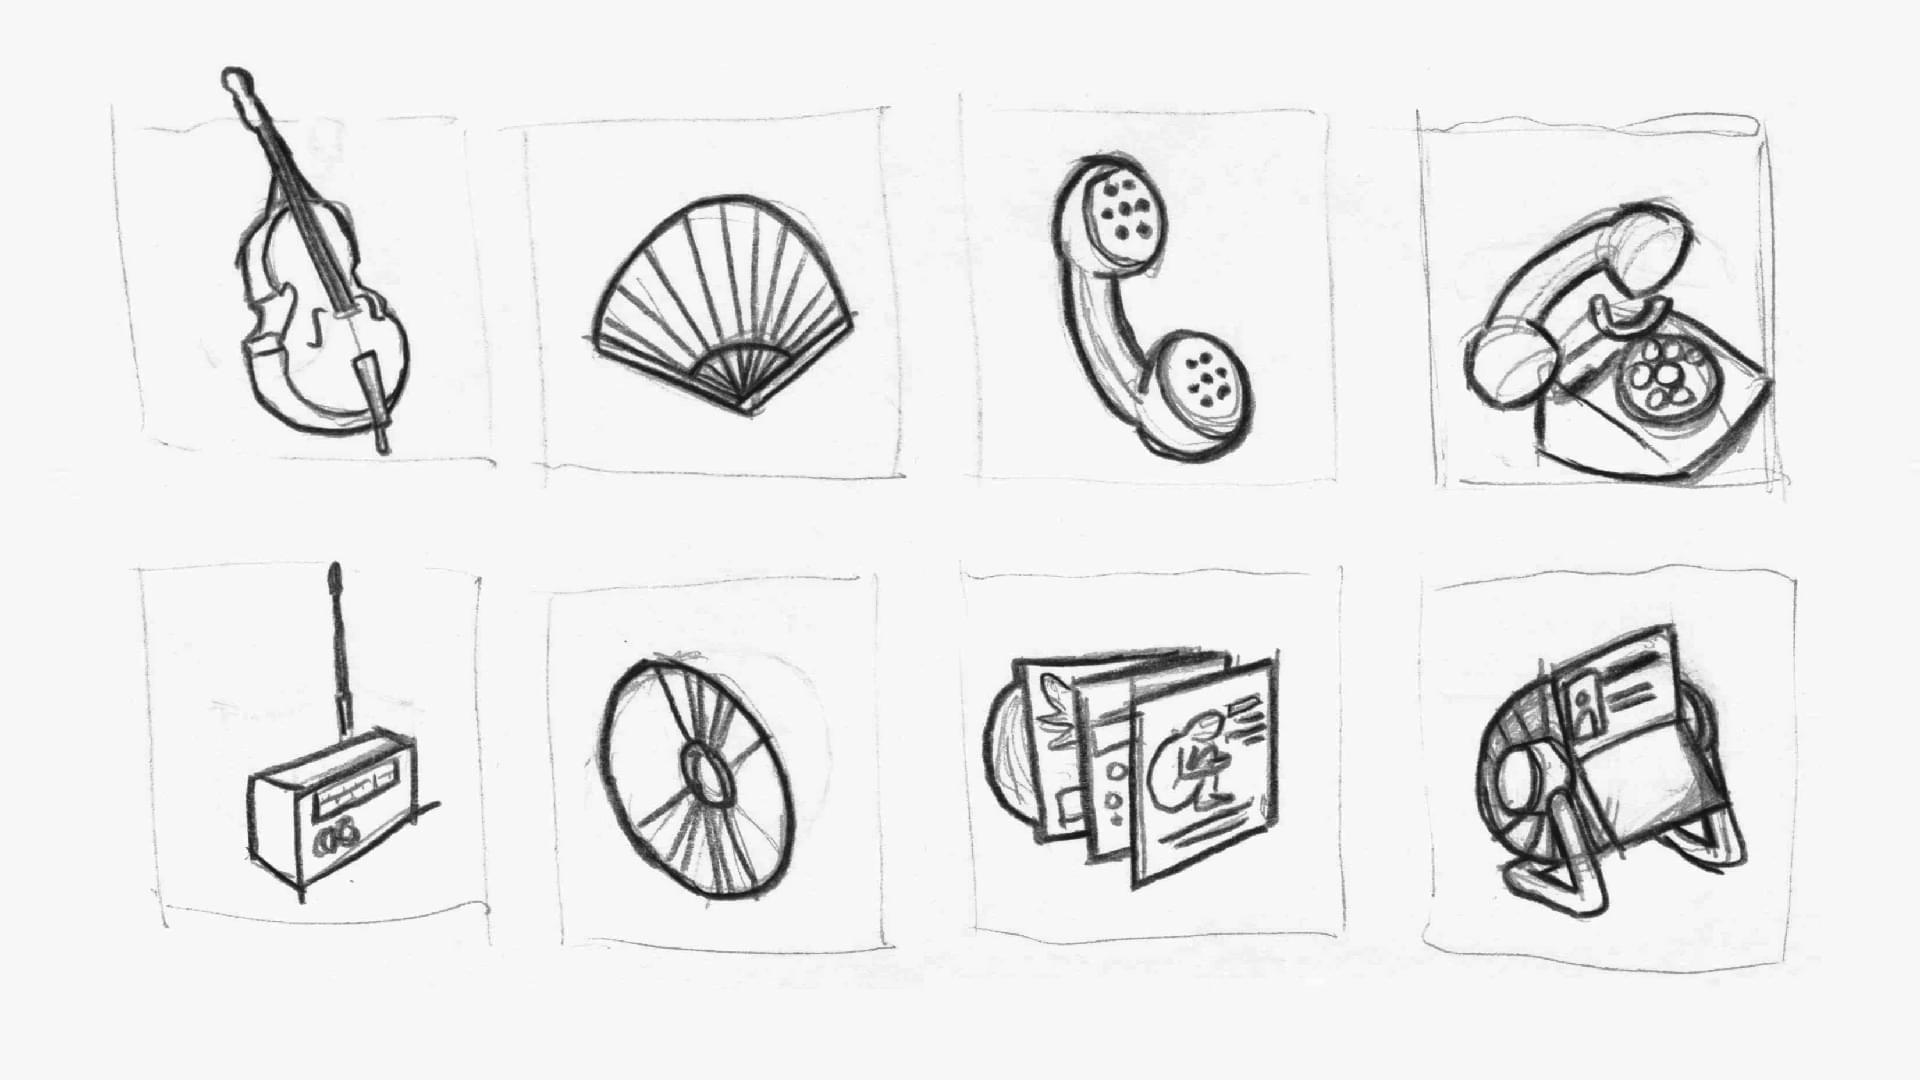 Sketches of the icons as base for the Mercedes screen design.